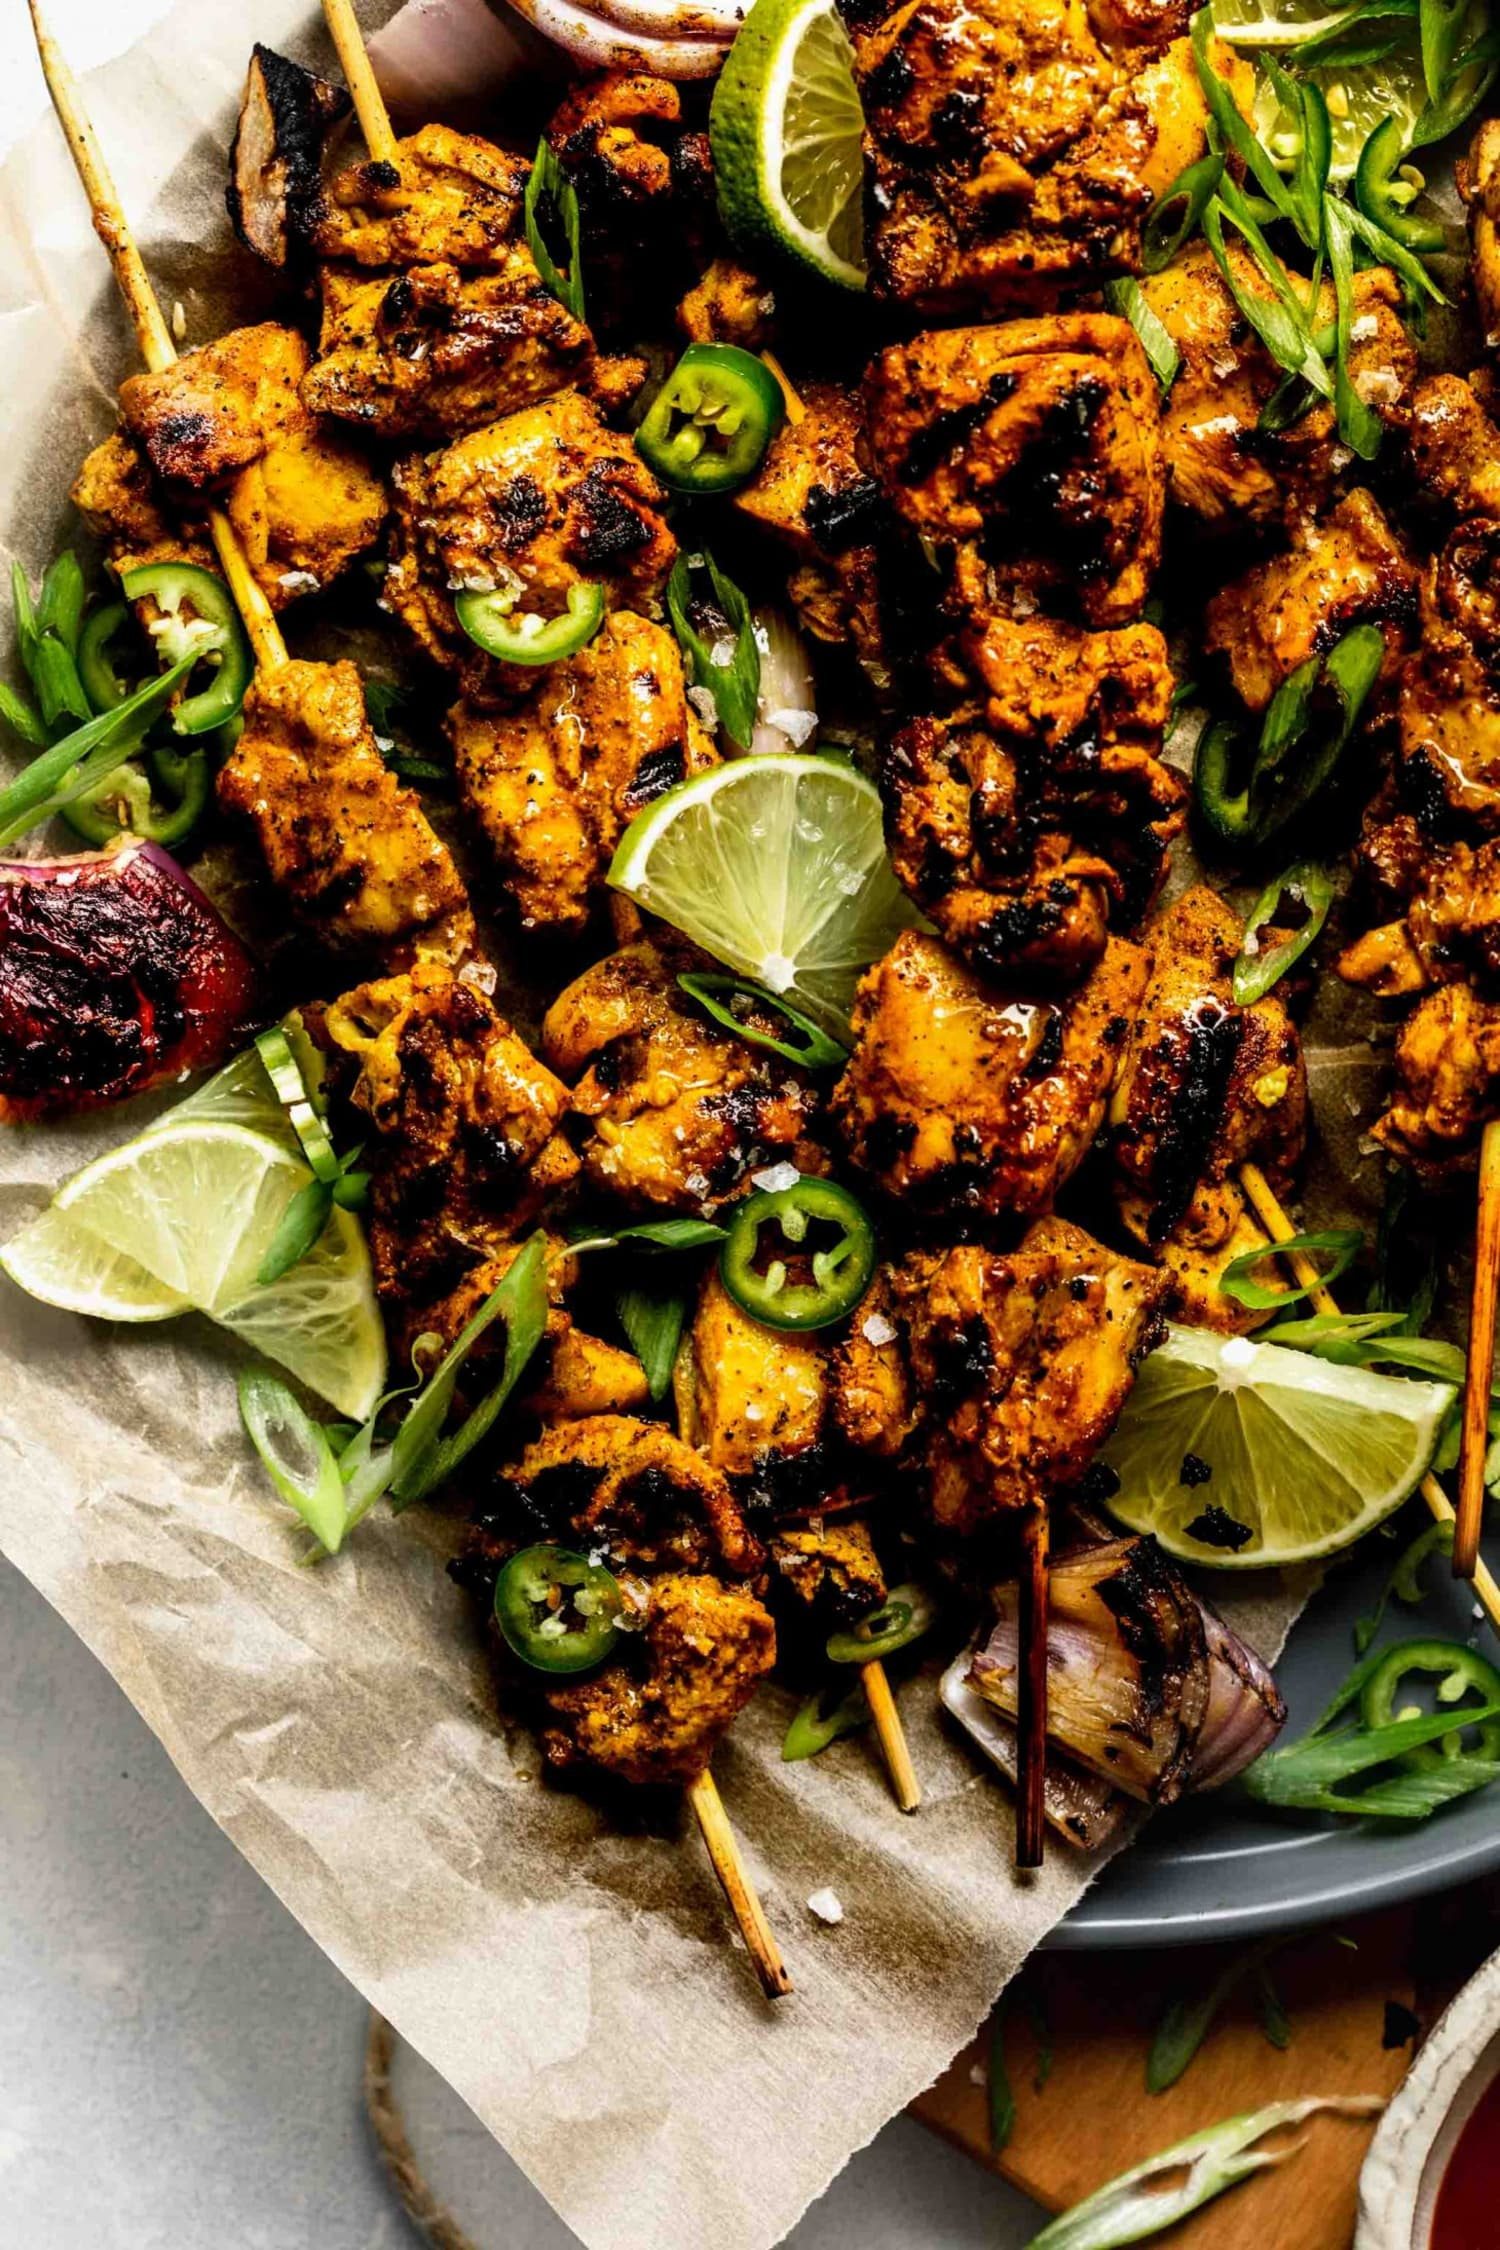 Make These Curry Lime Chicken Skewers for Dinner This Week